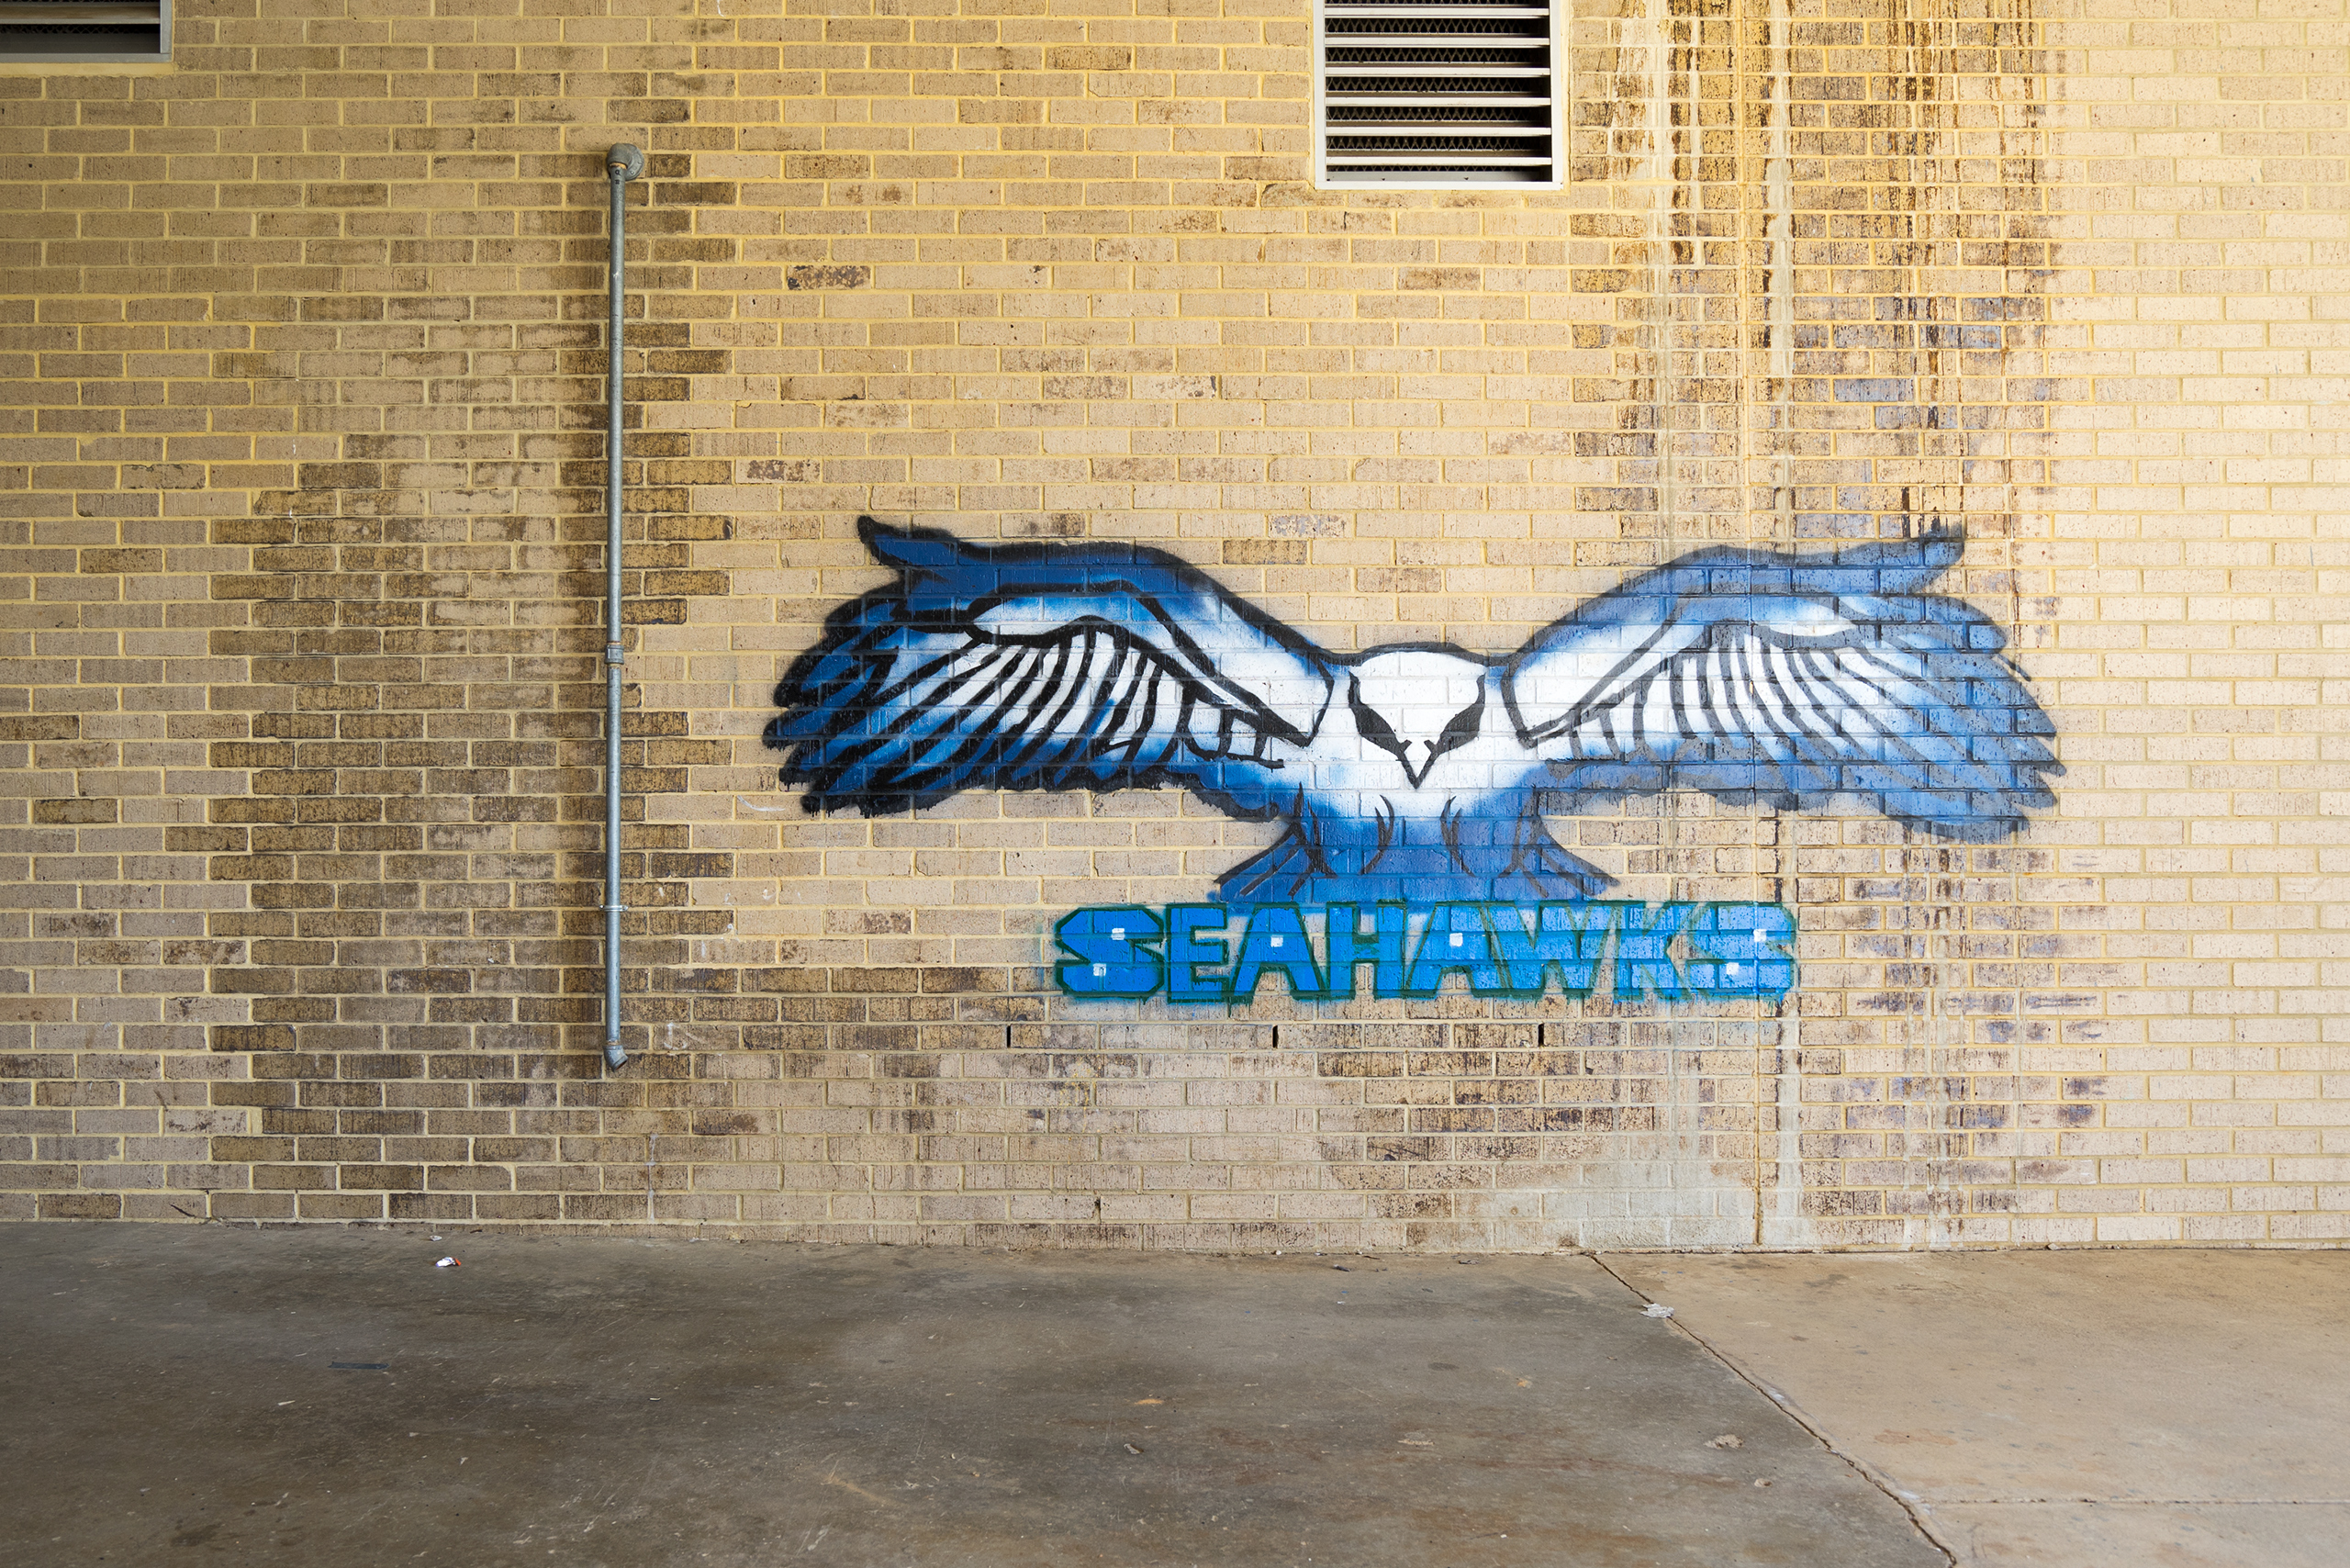 South Lakes Sea Hawks – The Logo of all sports teams of the South Lakes High School in Reston, VA | Photo: Matthias Ries